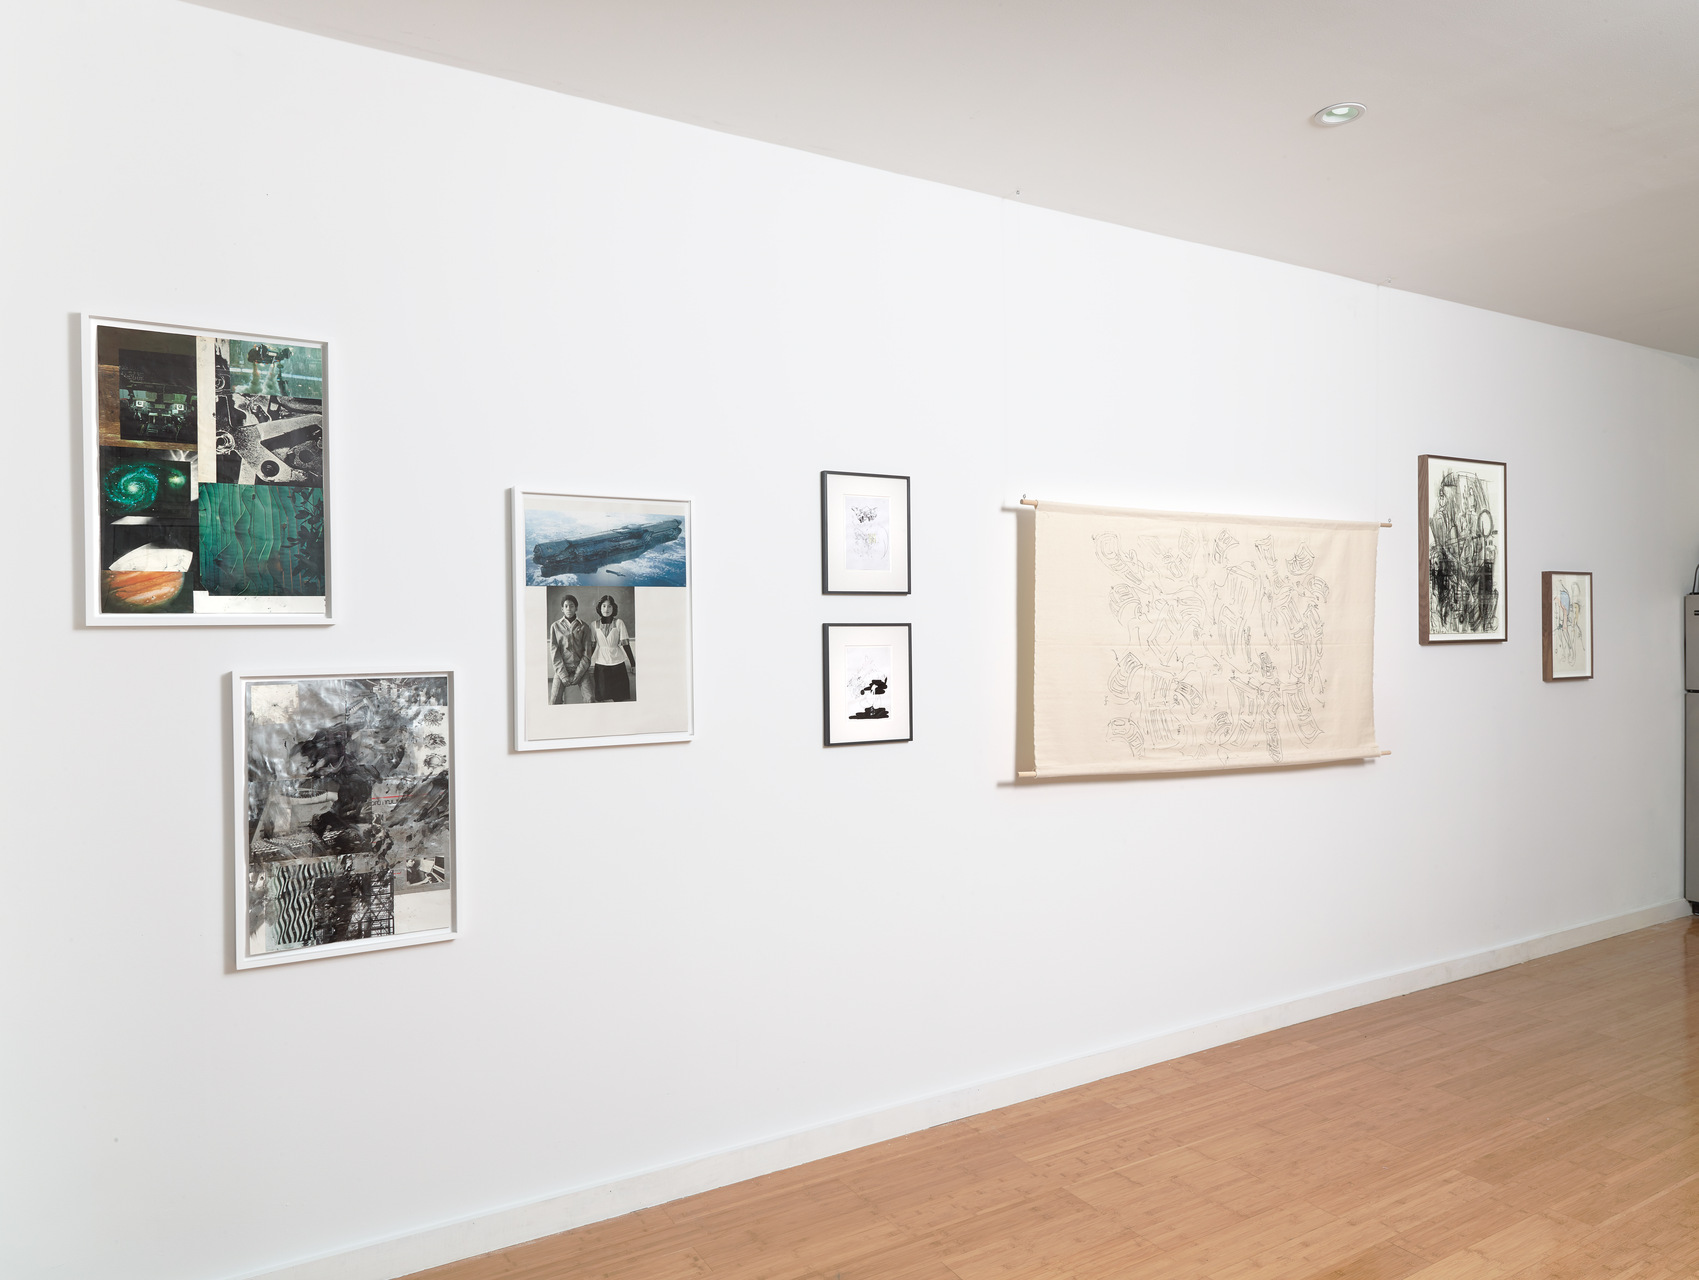 4 - Installation view